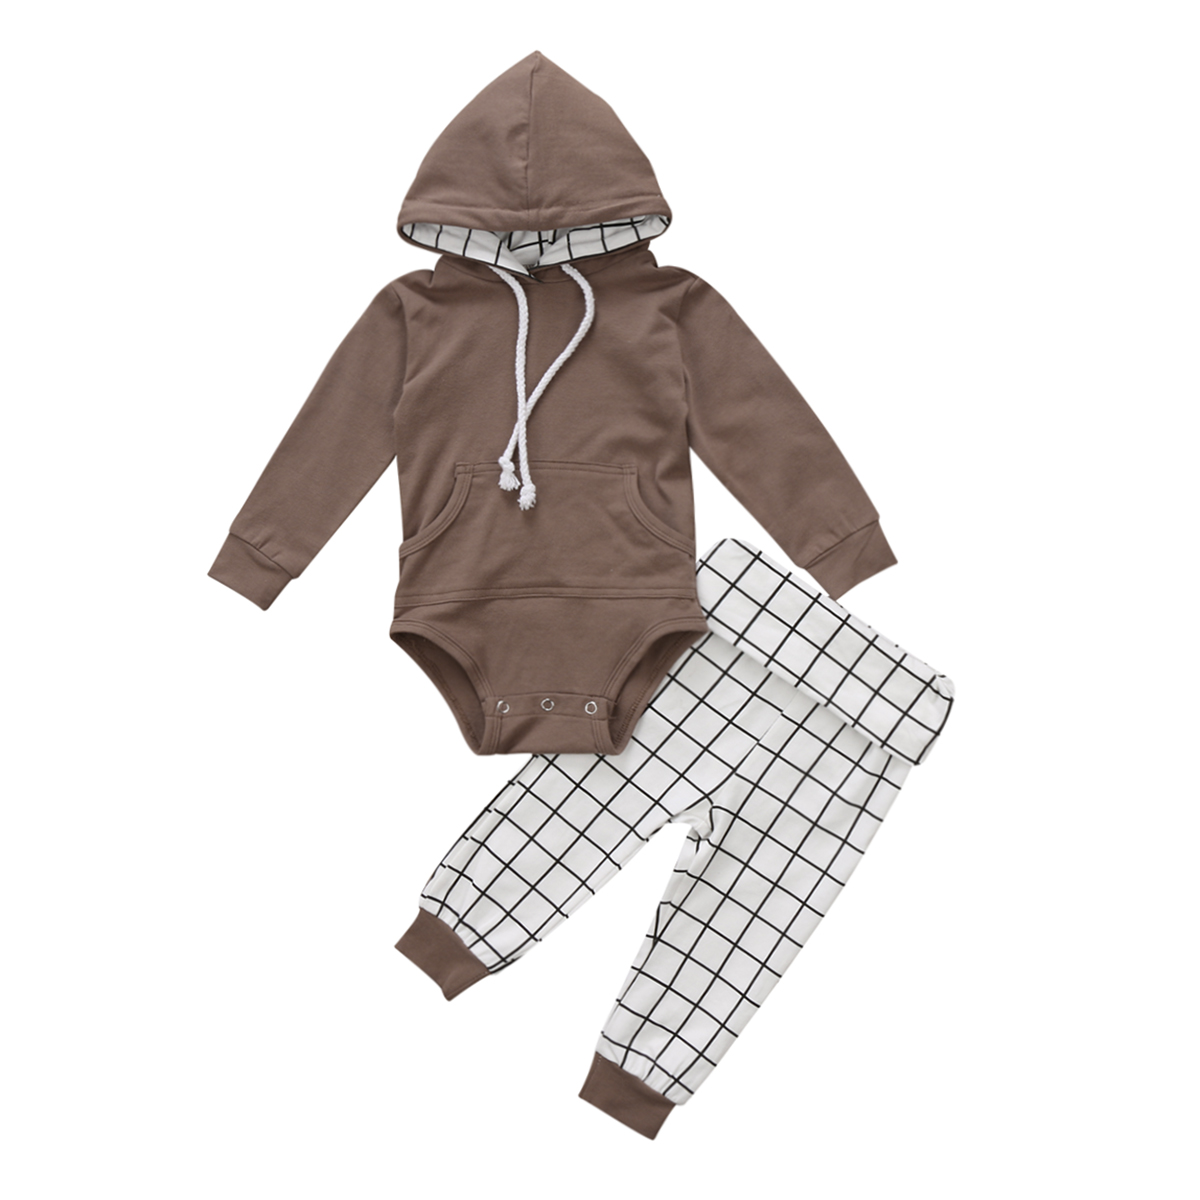 Newborn Infant Baby Boy Long Sleeve Hooded Romper Tops+Plaid Pants Leggings 2Pcs Spring Fall Outfits Clothes